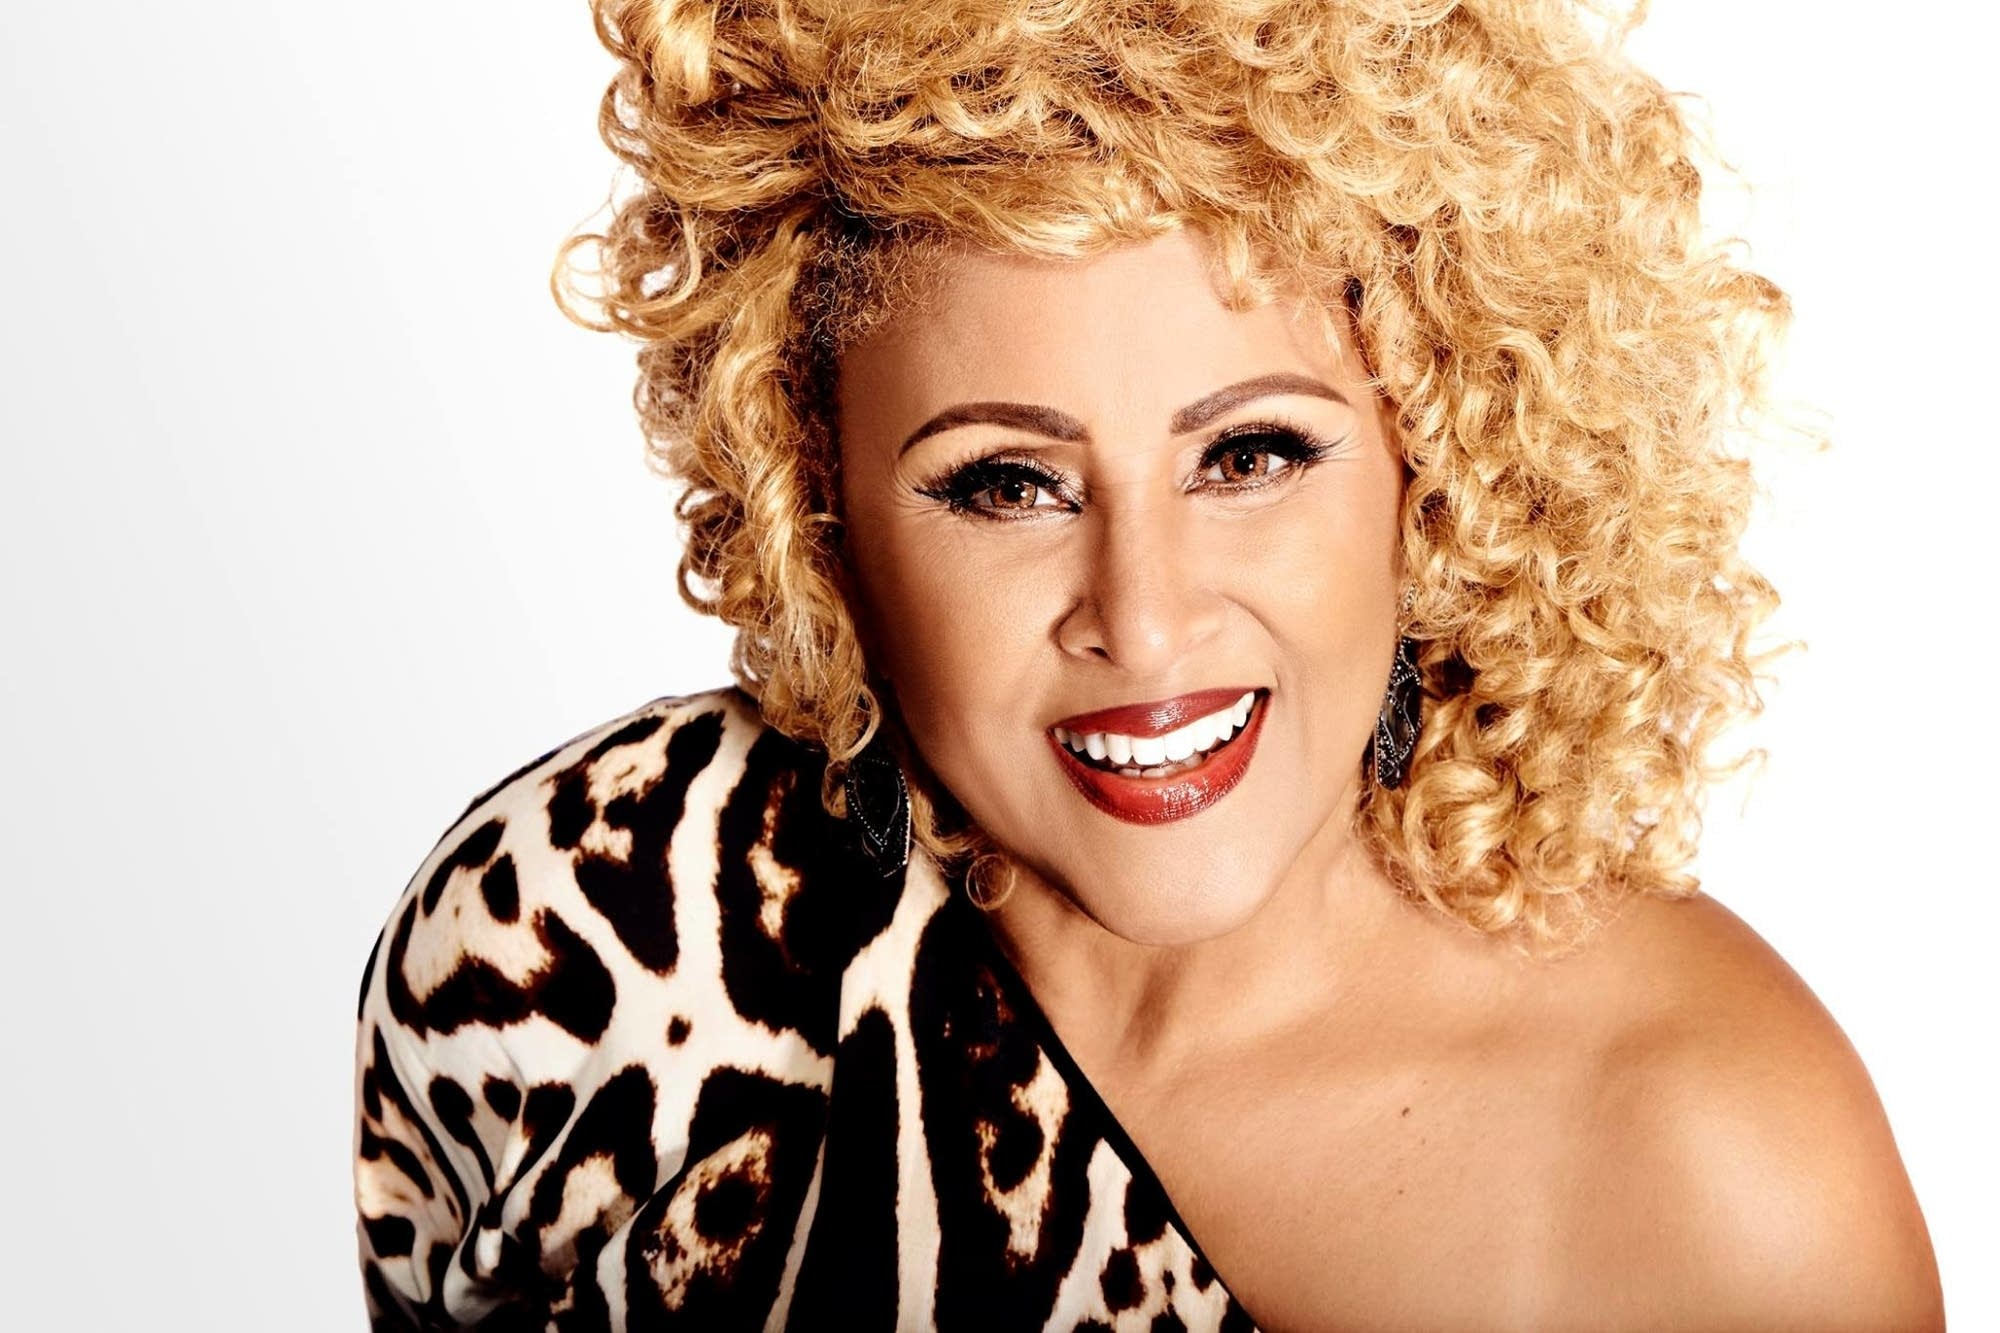 darlene love lean on medarlene love all alone on christmas, darlene love скачать, darlene love christmas, darlene love christmas скачать, darlene love christmas mp3, darlene love winter wonderland, darlene love today i met the boy i'm gonna marry lyrics, darlene love white christmas, darlene love a fine fine boy, darlene love discography, darlene love today i met the boy, darlene love alley oop, darlene love all alone on christmas lyrics, darlene love home alone, darlene love lean on me, darlene love слушать, darlene love christmas перевод, darlene love baby come home, darlene love lyrics, darlene love paint another picture